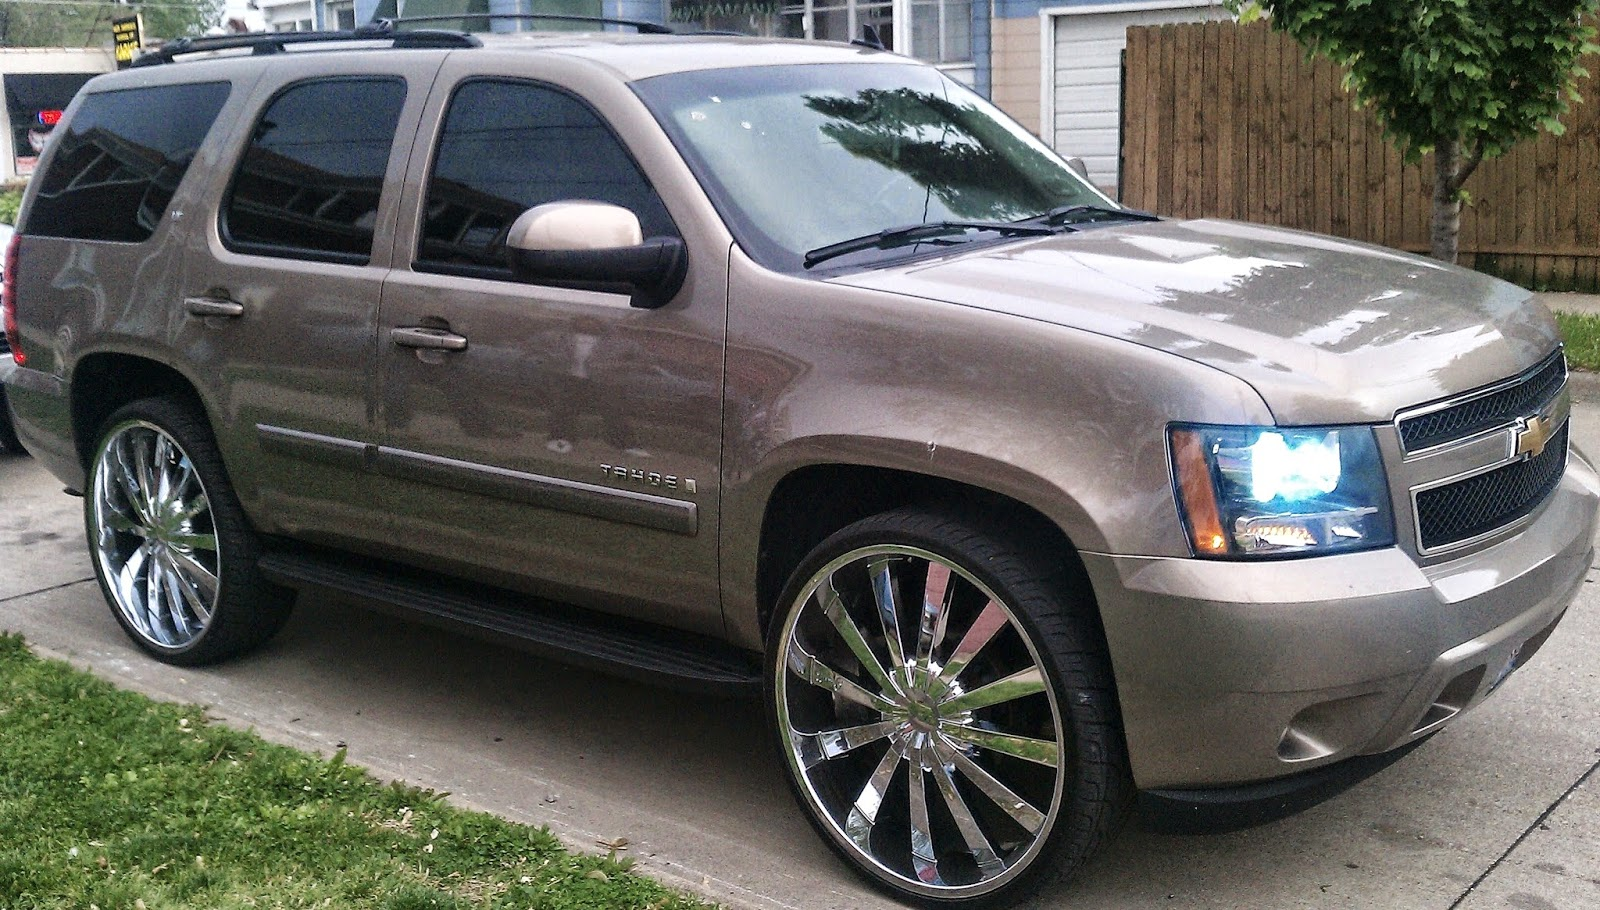 Chevrolet tahoe tuned cars car tuning